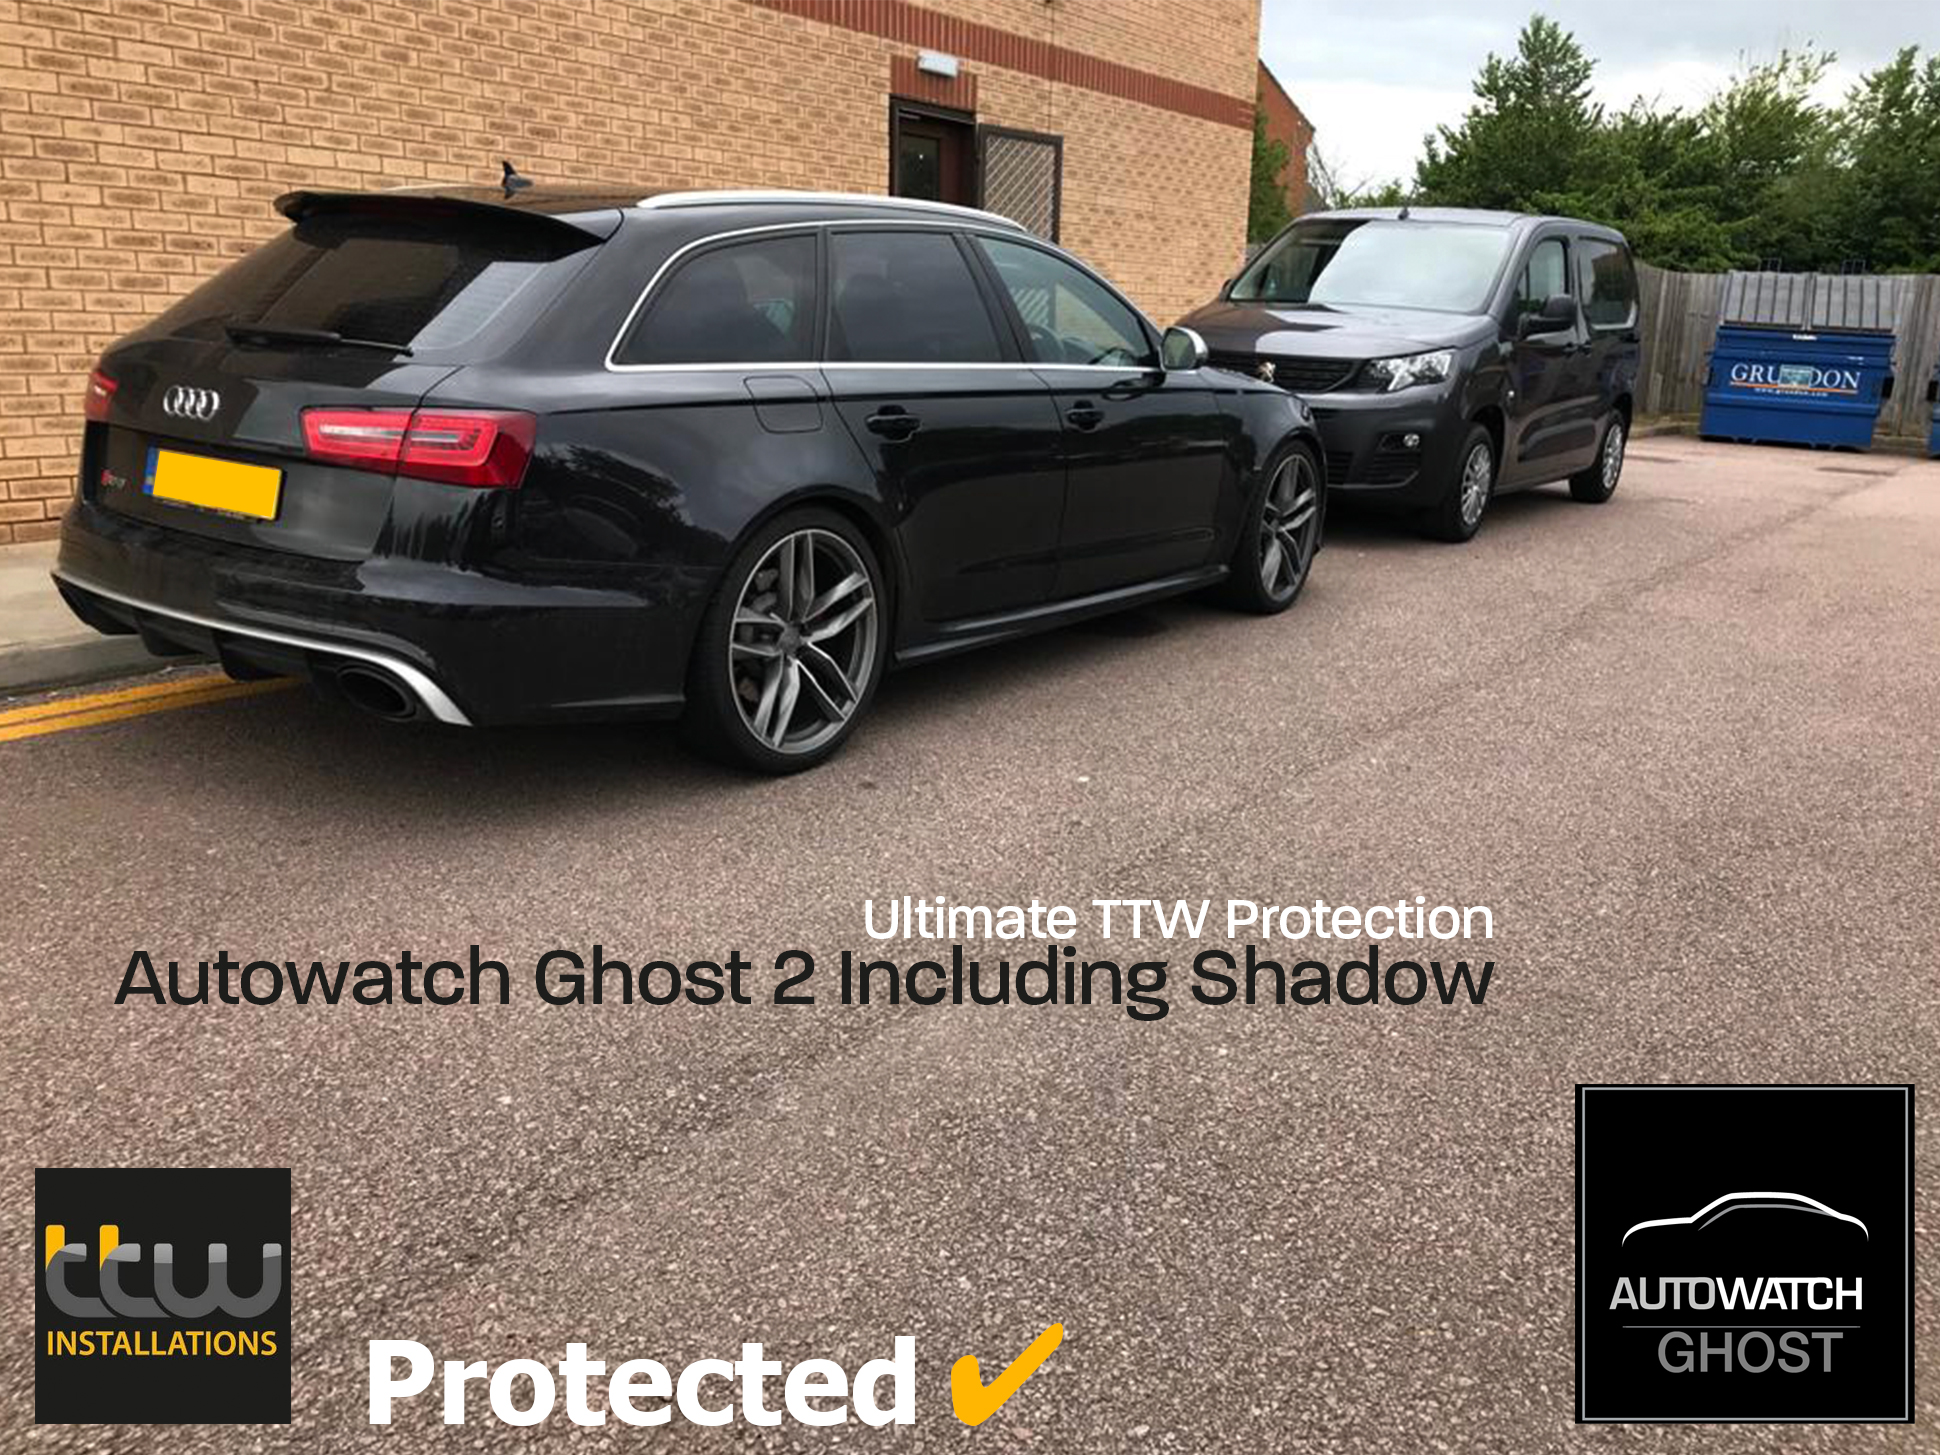 Audi RS6 -  Autowatch Ghost 2 protected By TTW Installations